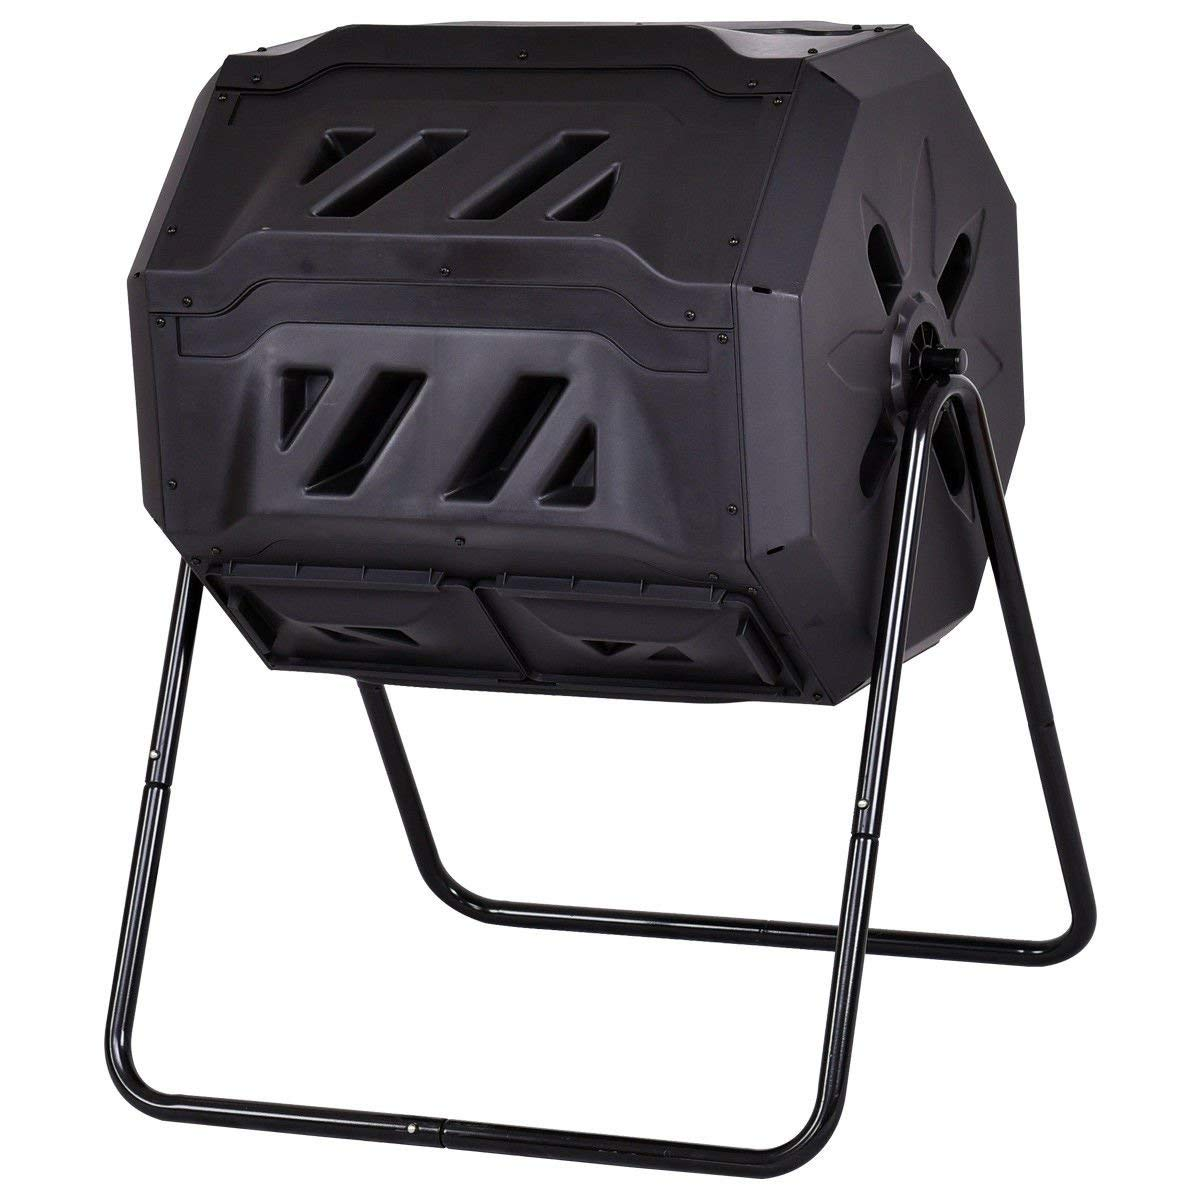 Goplus Twin Chamber Compost Tumbler 42-Gallon